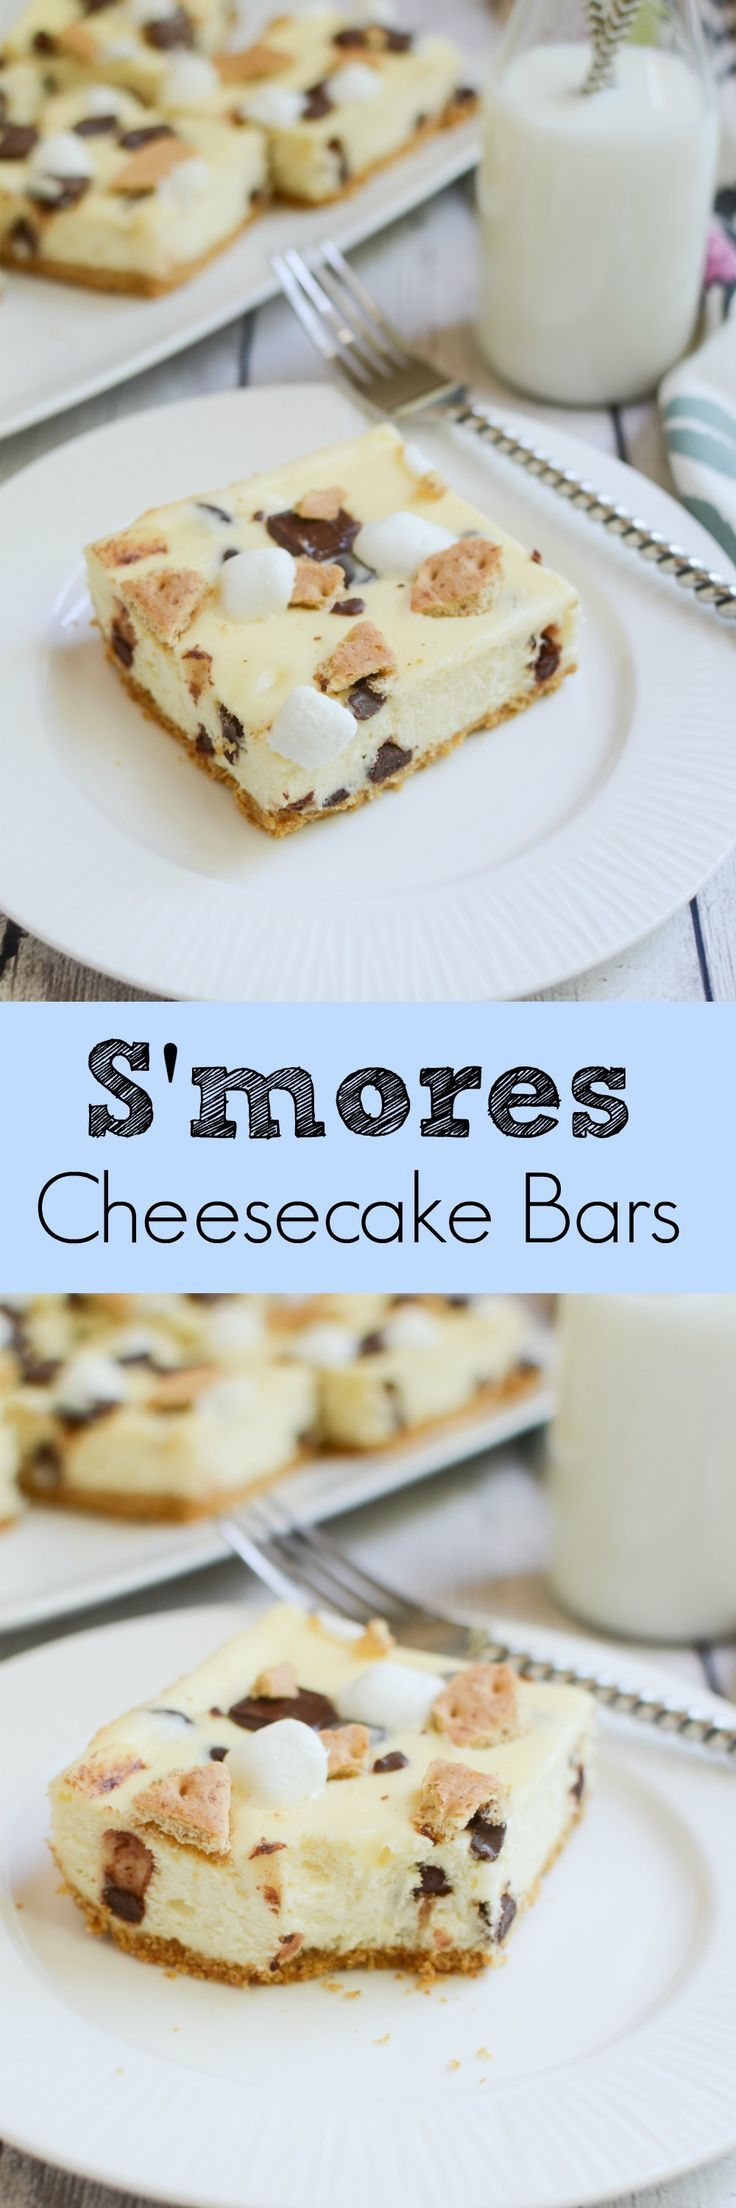 S'mores Cheesecake Bars - delicious chocolate chip cheesecake bars topped with marshmallows, graham crackers, and Hershey's bars!